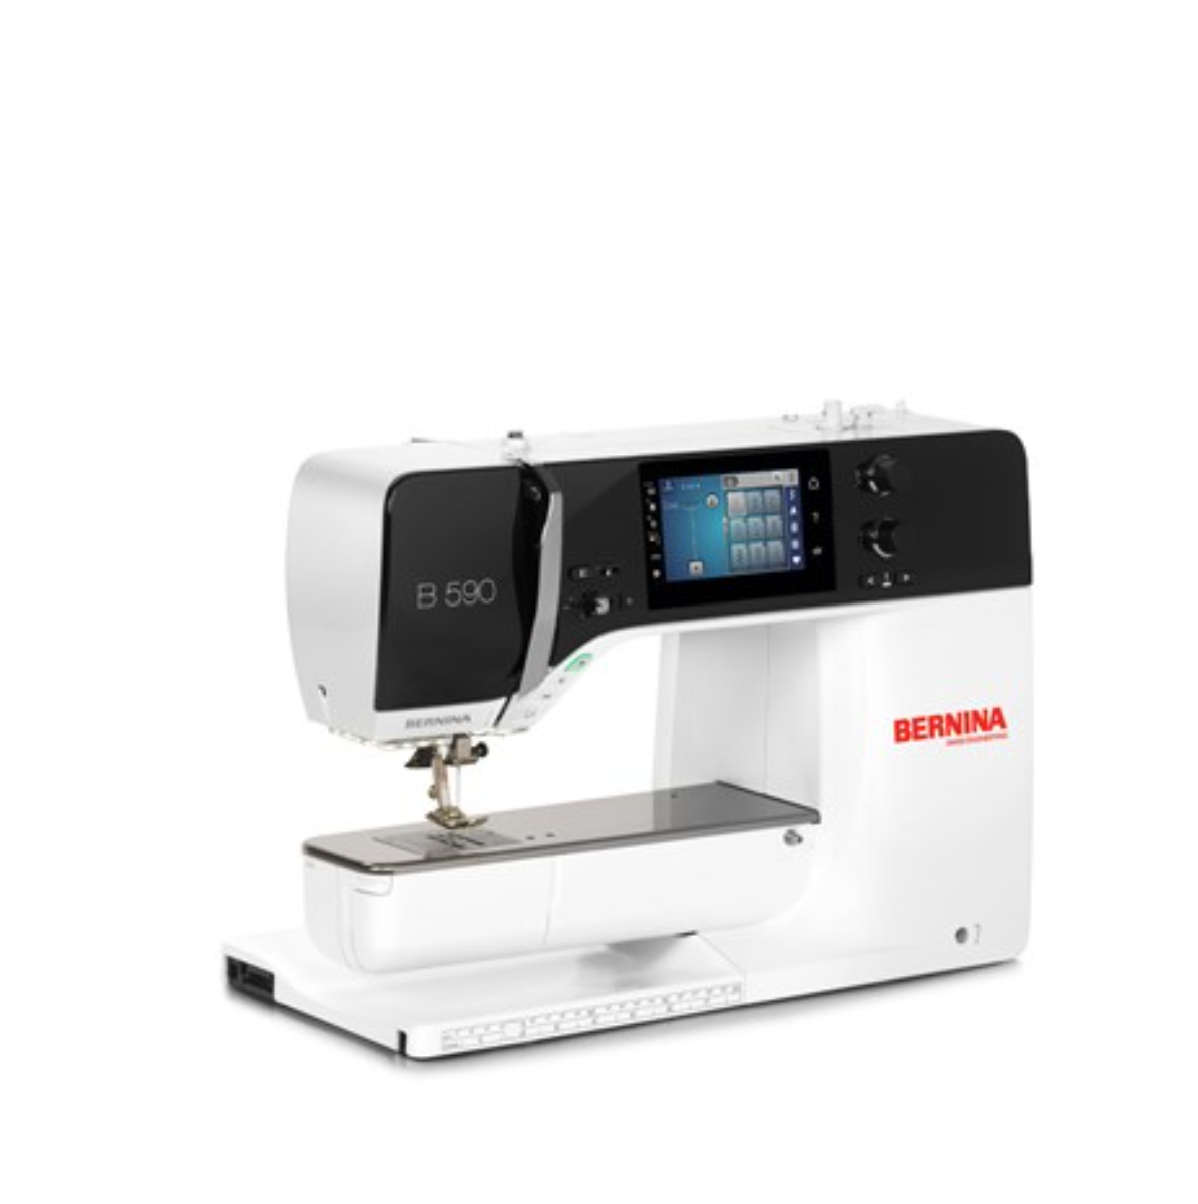 Bernina 790 PLUS / 790 PLUS E, Sewing / Embroidery